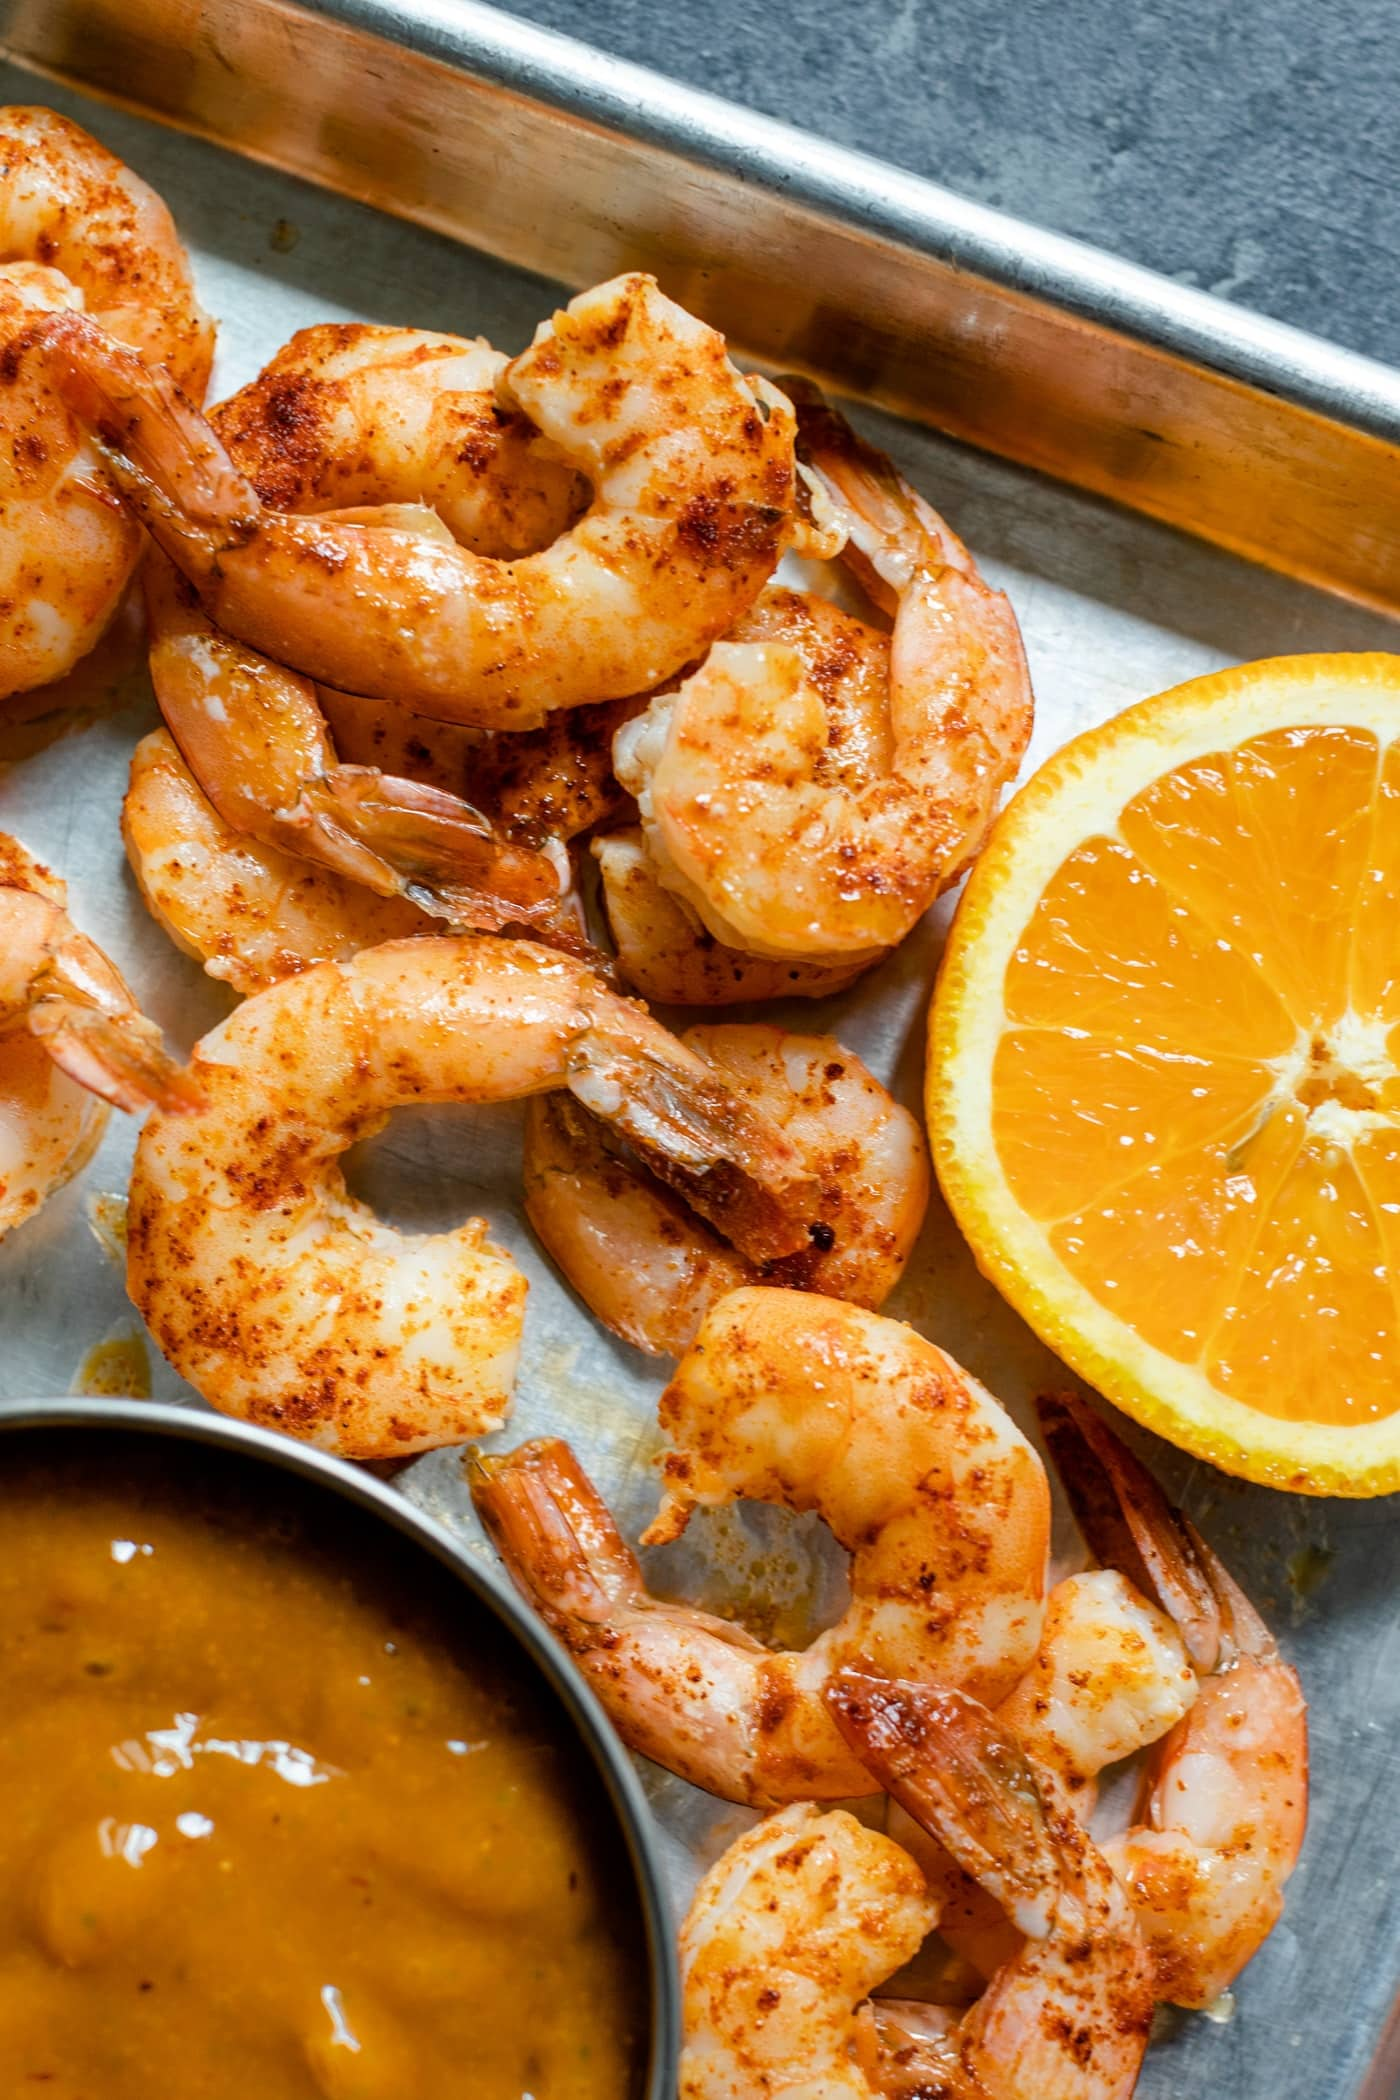 Pieces of chipotle shrimp on roasting sheet with slice of orange and bowl of mango sauce on a gray concrete surface